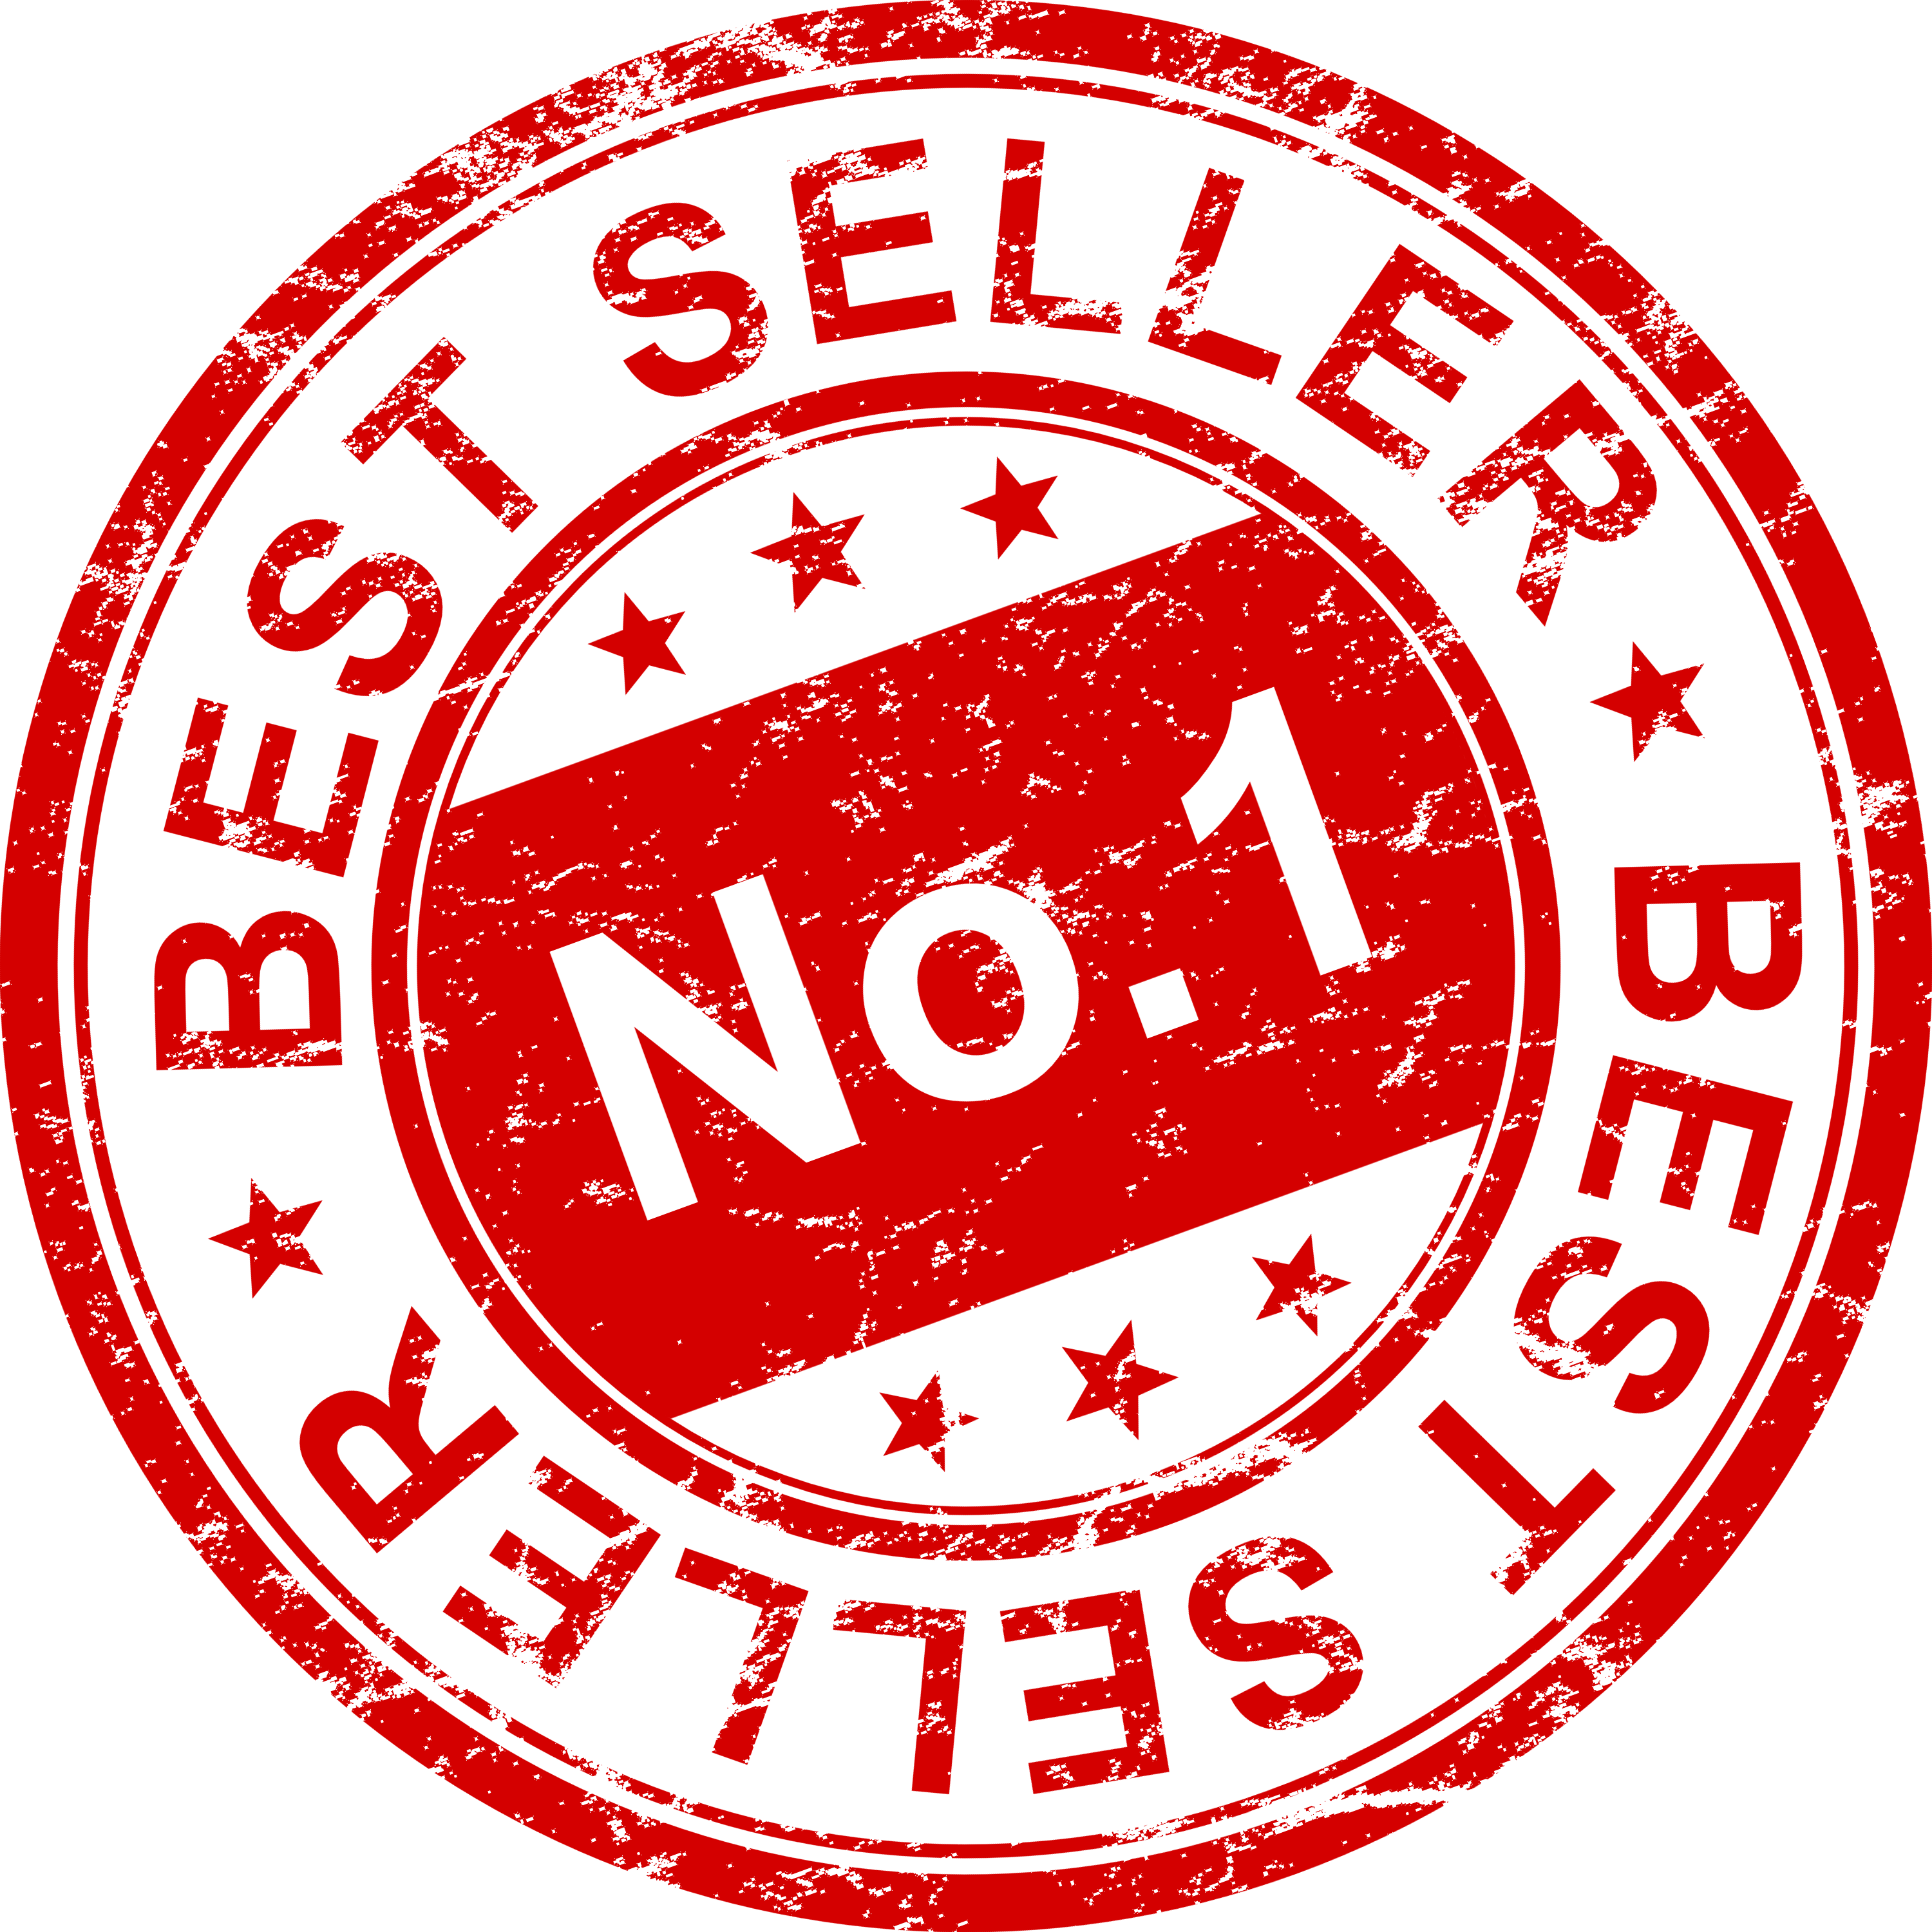 stamp, best seller stamps png transparent onlygfxm #28694